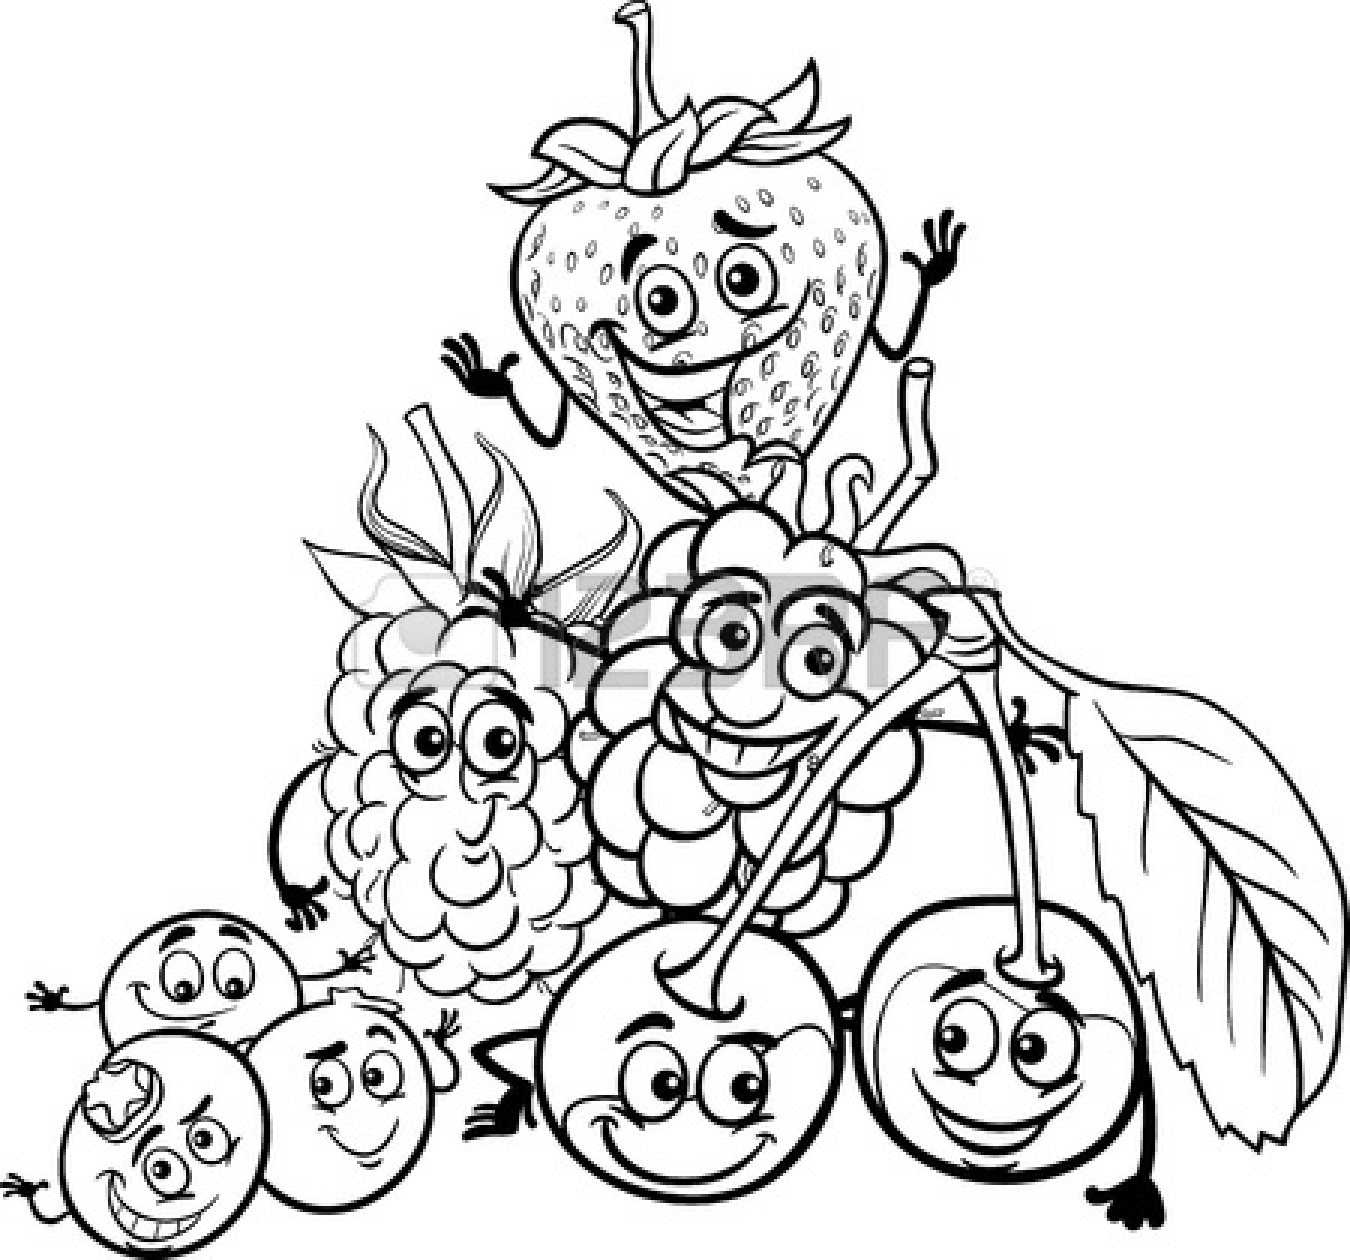 Food download best . Free fruits in bag clipart black and white